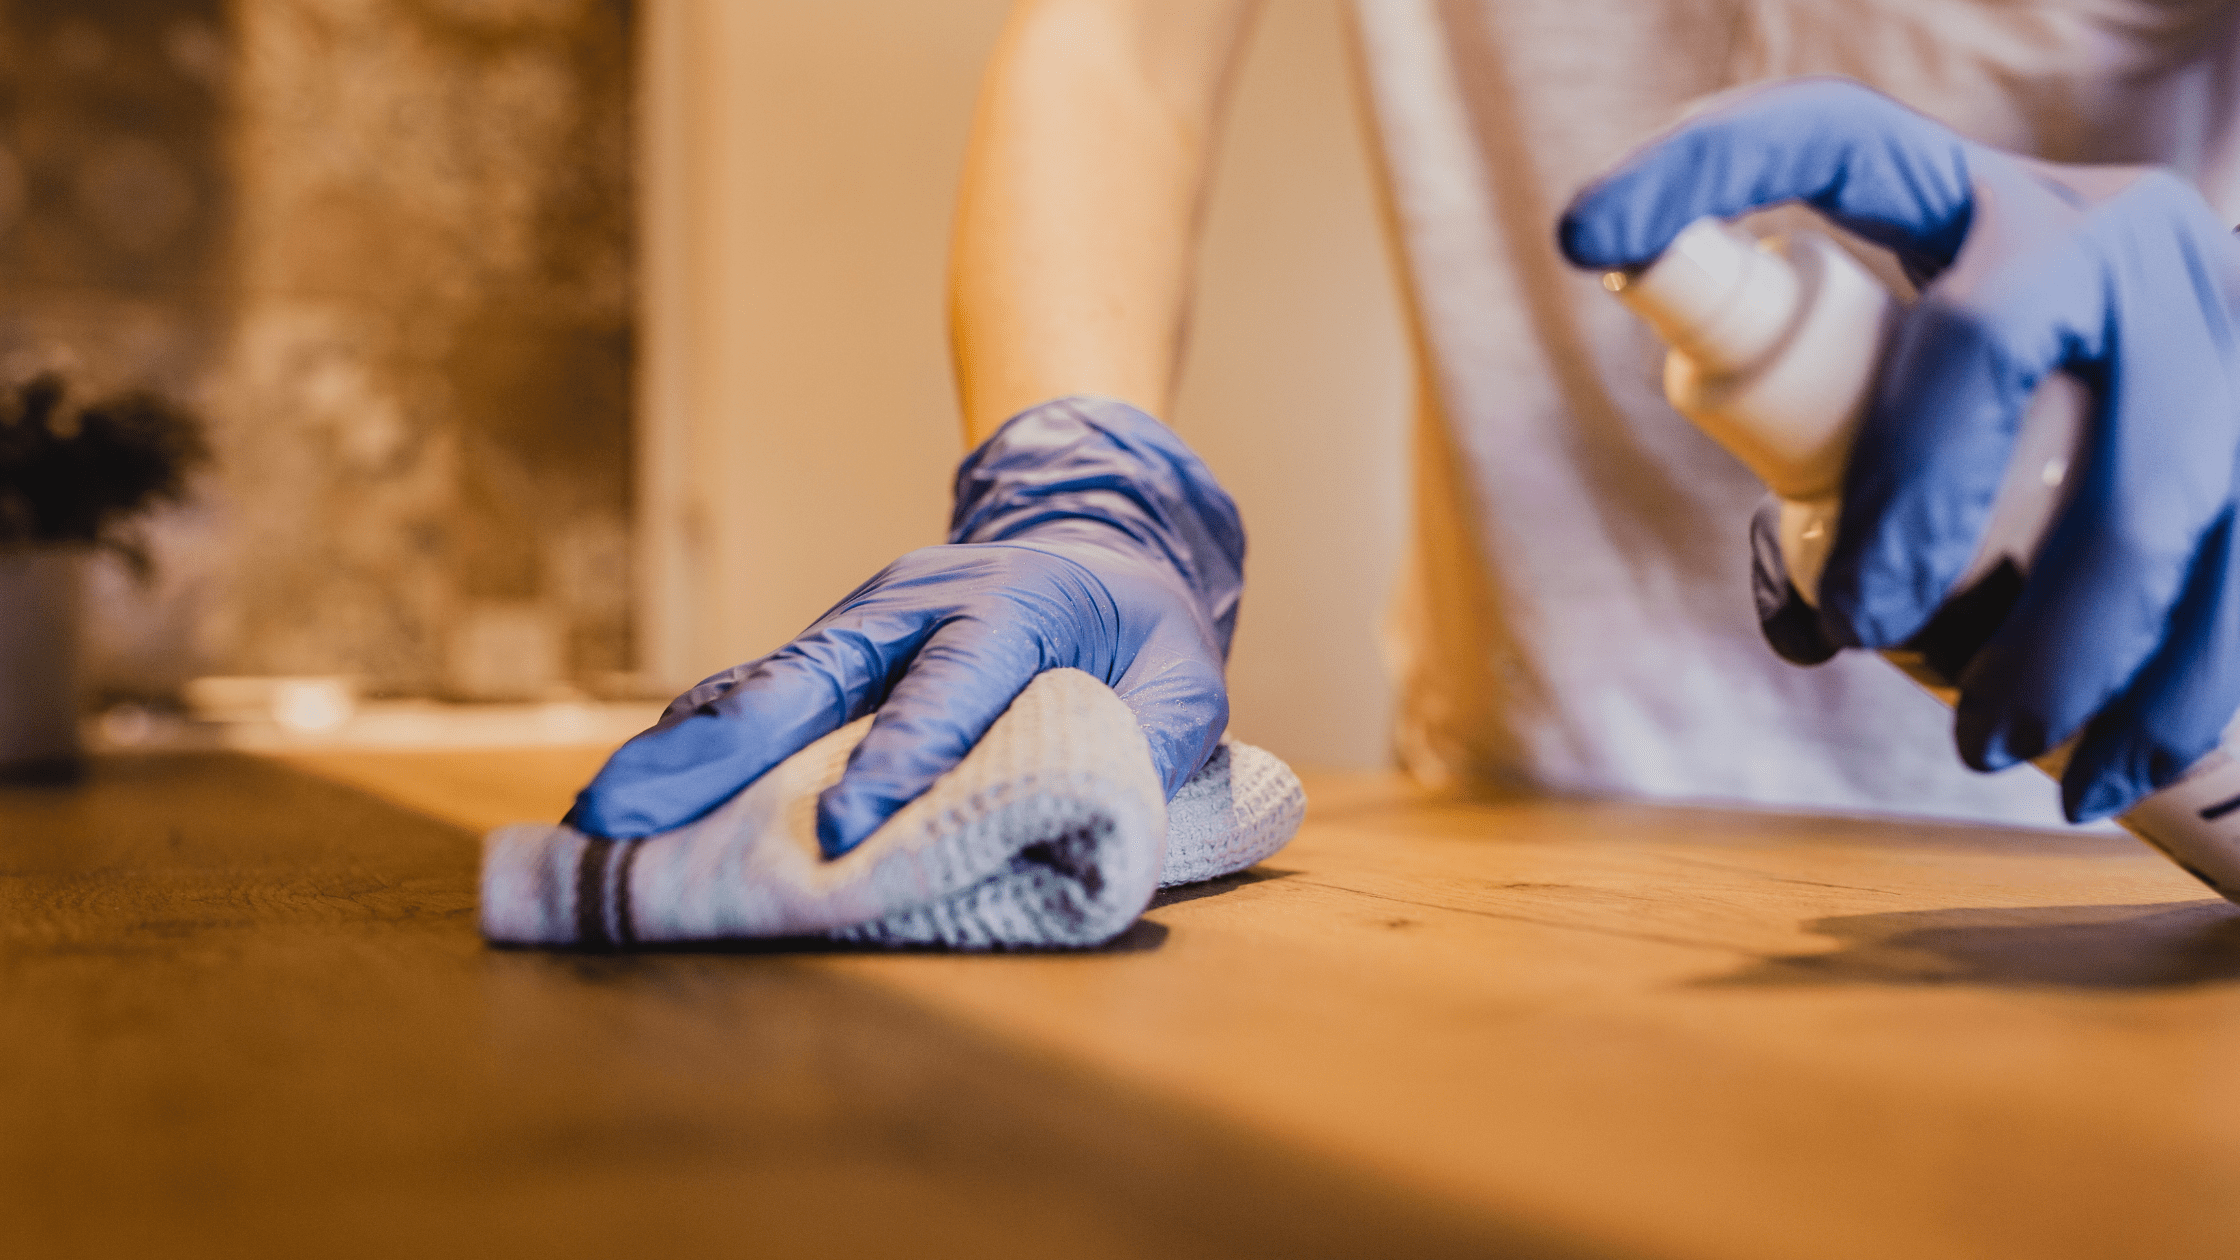 cleaning chemicals in the air